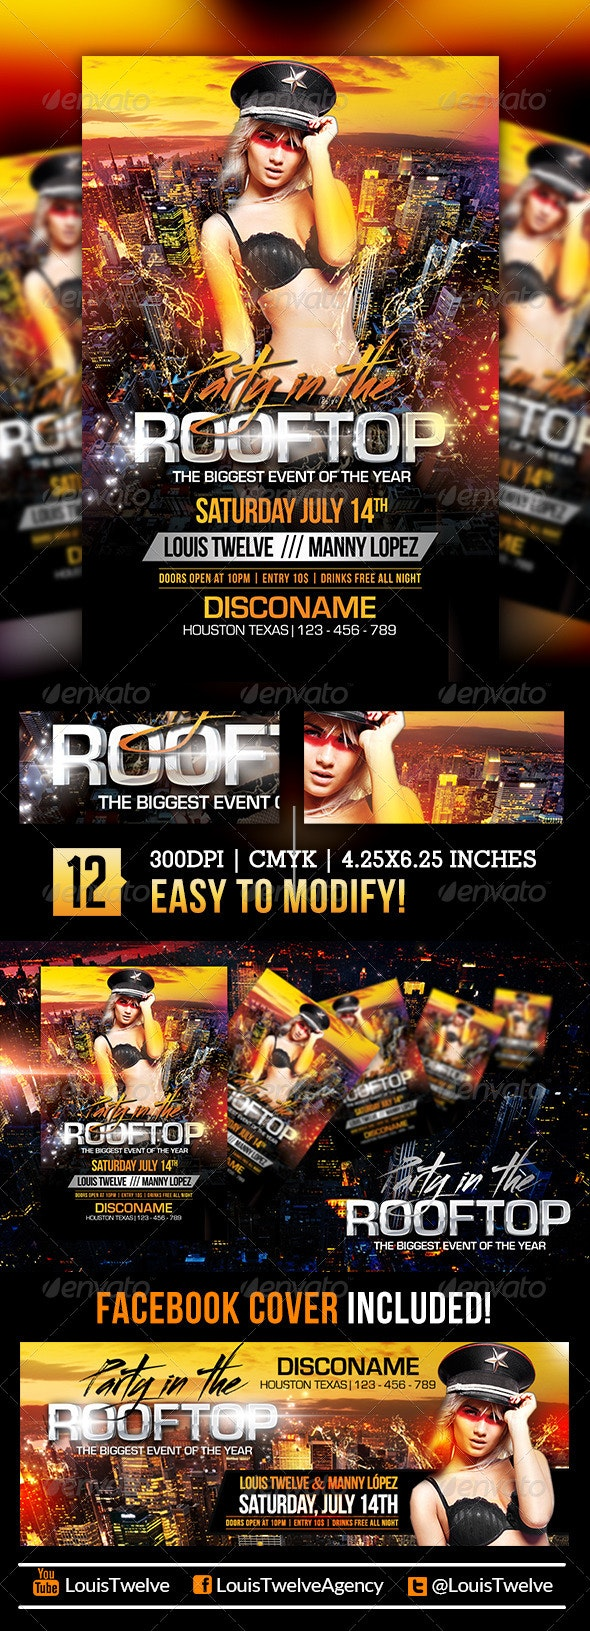 Party in the Rooftop | Flyer + Facebook Cover - Clubs & Parties Events